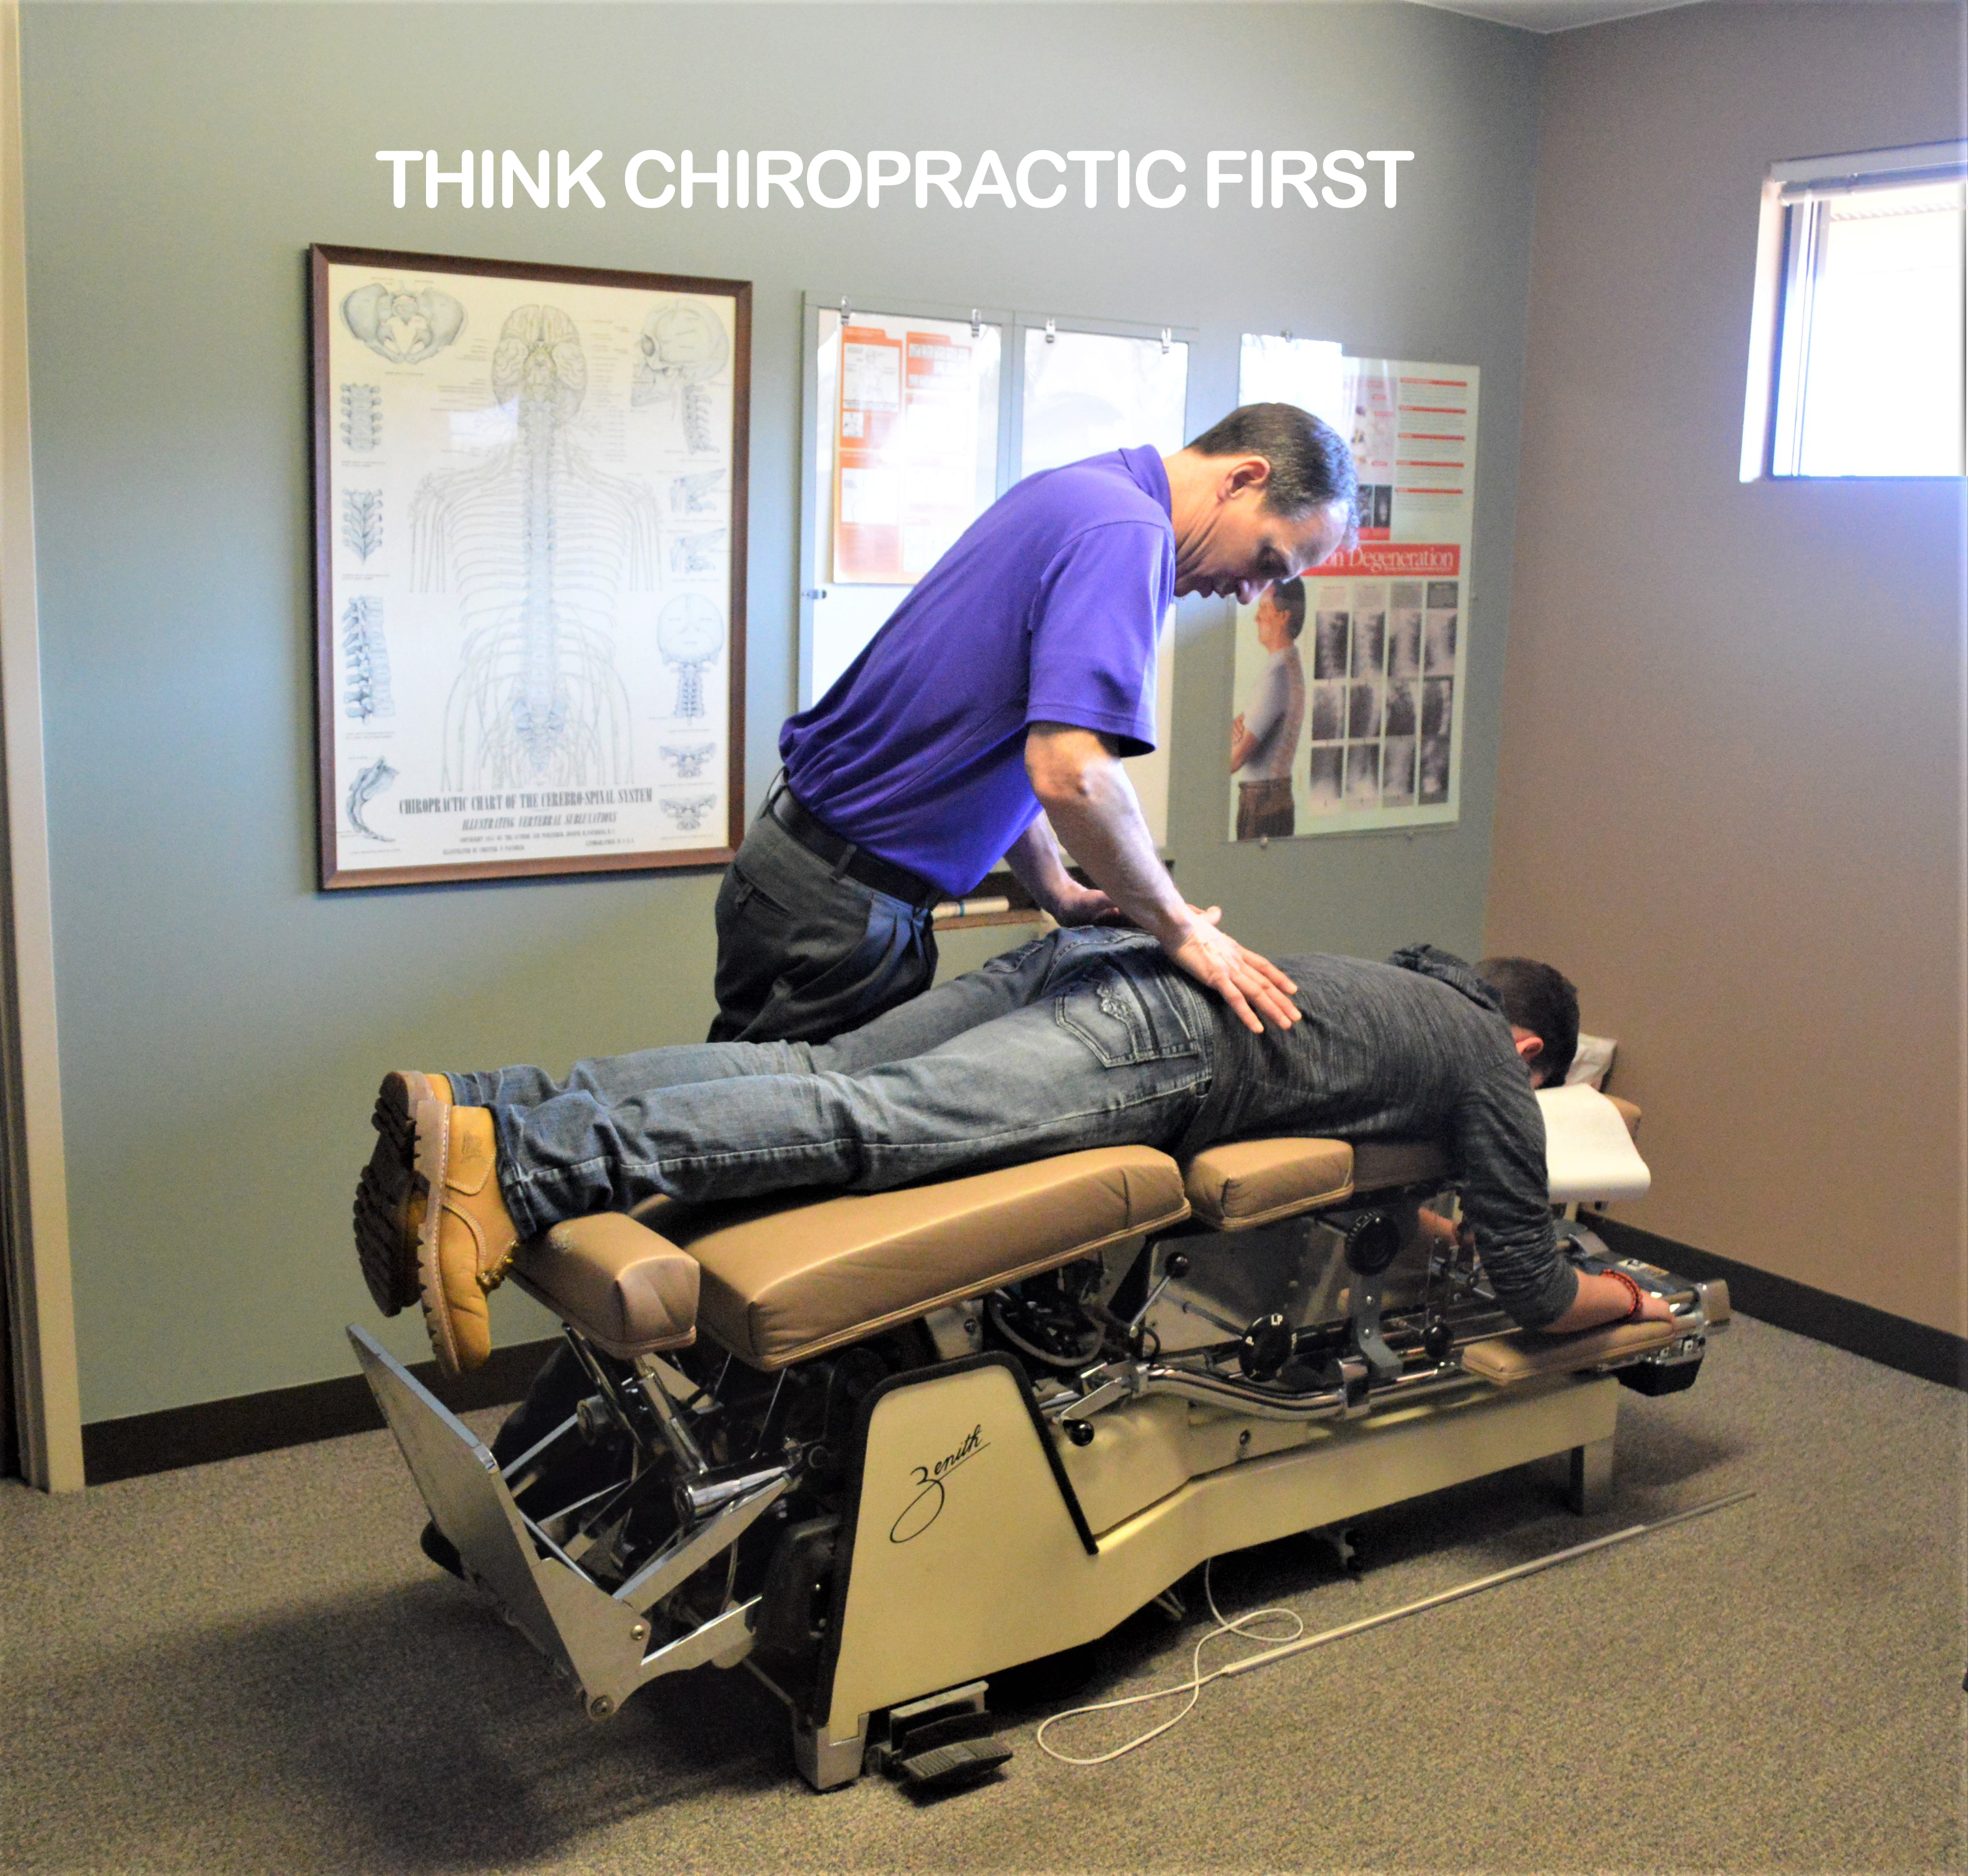 Man receiving chiropractic care